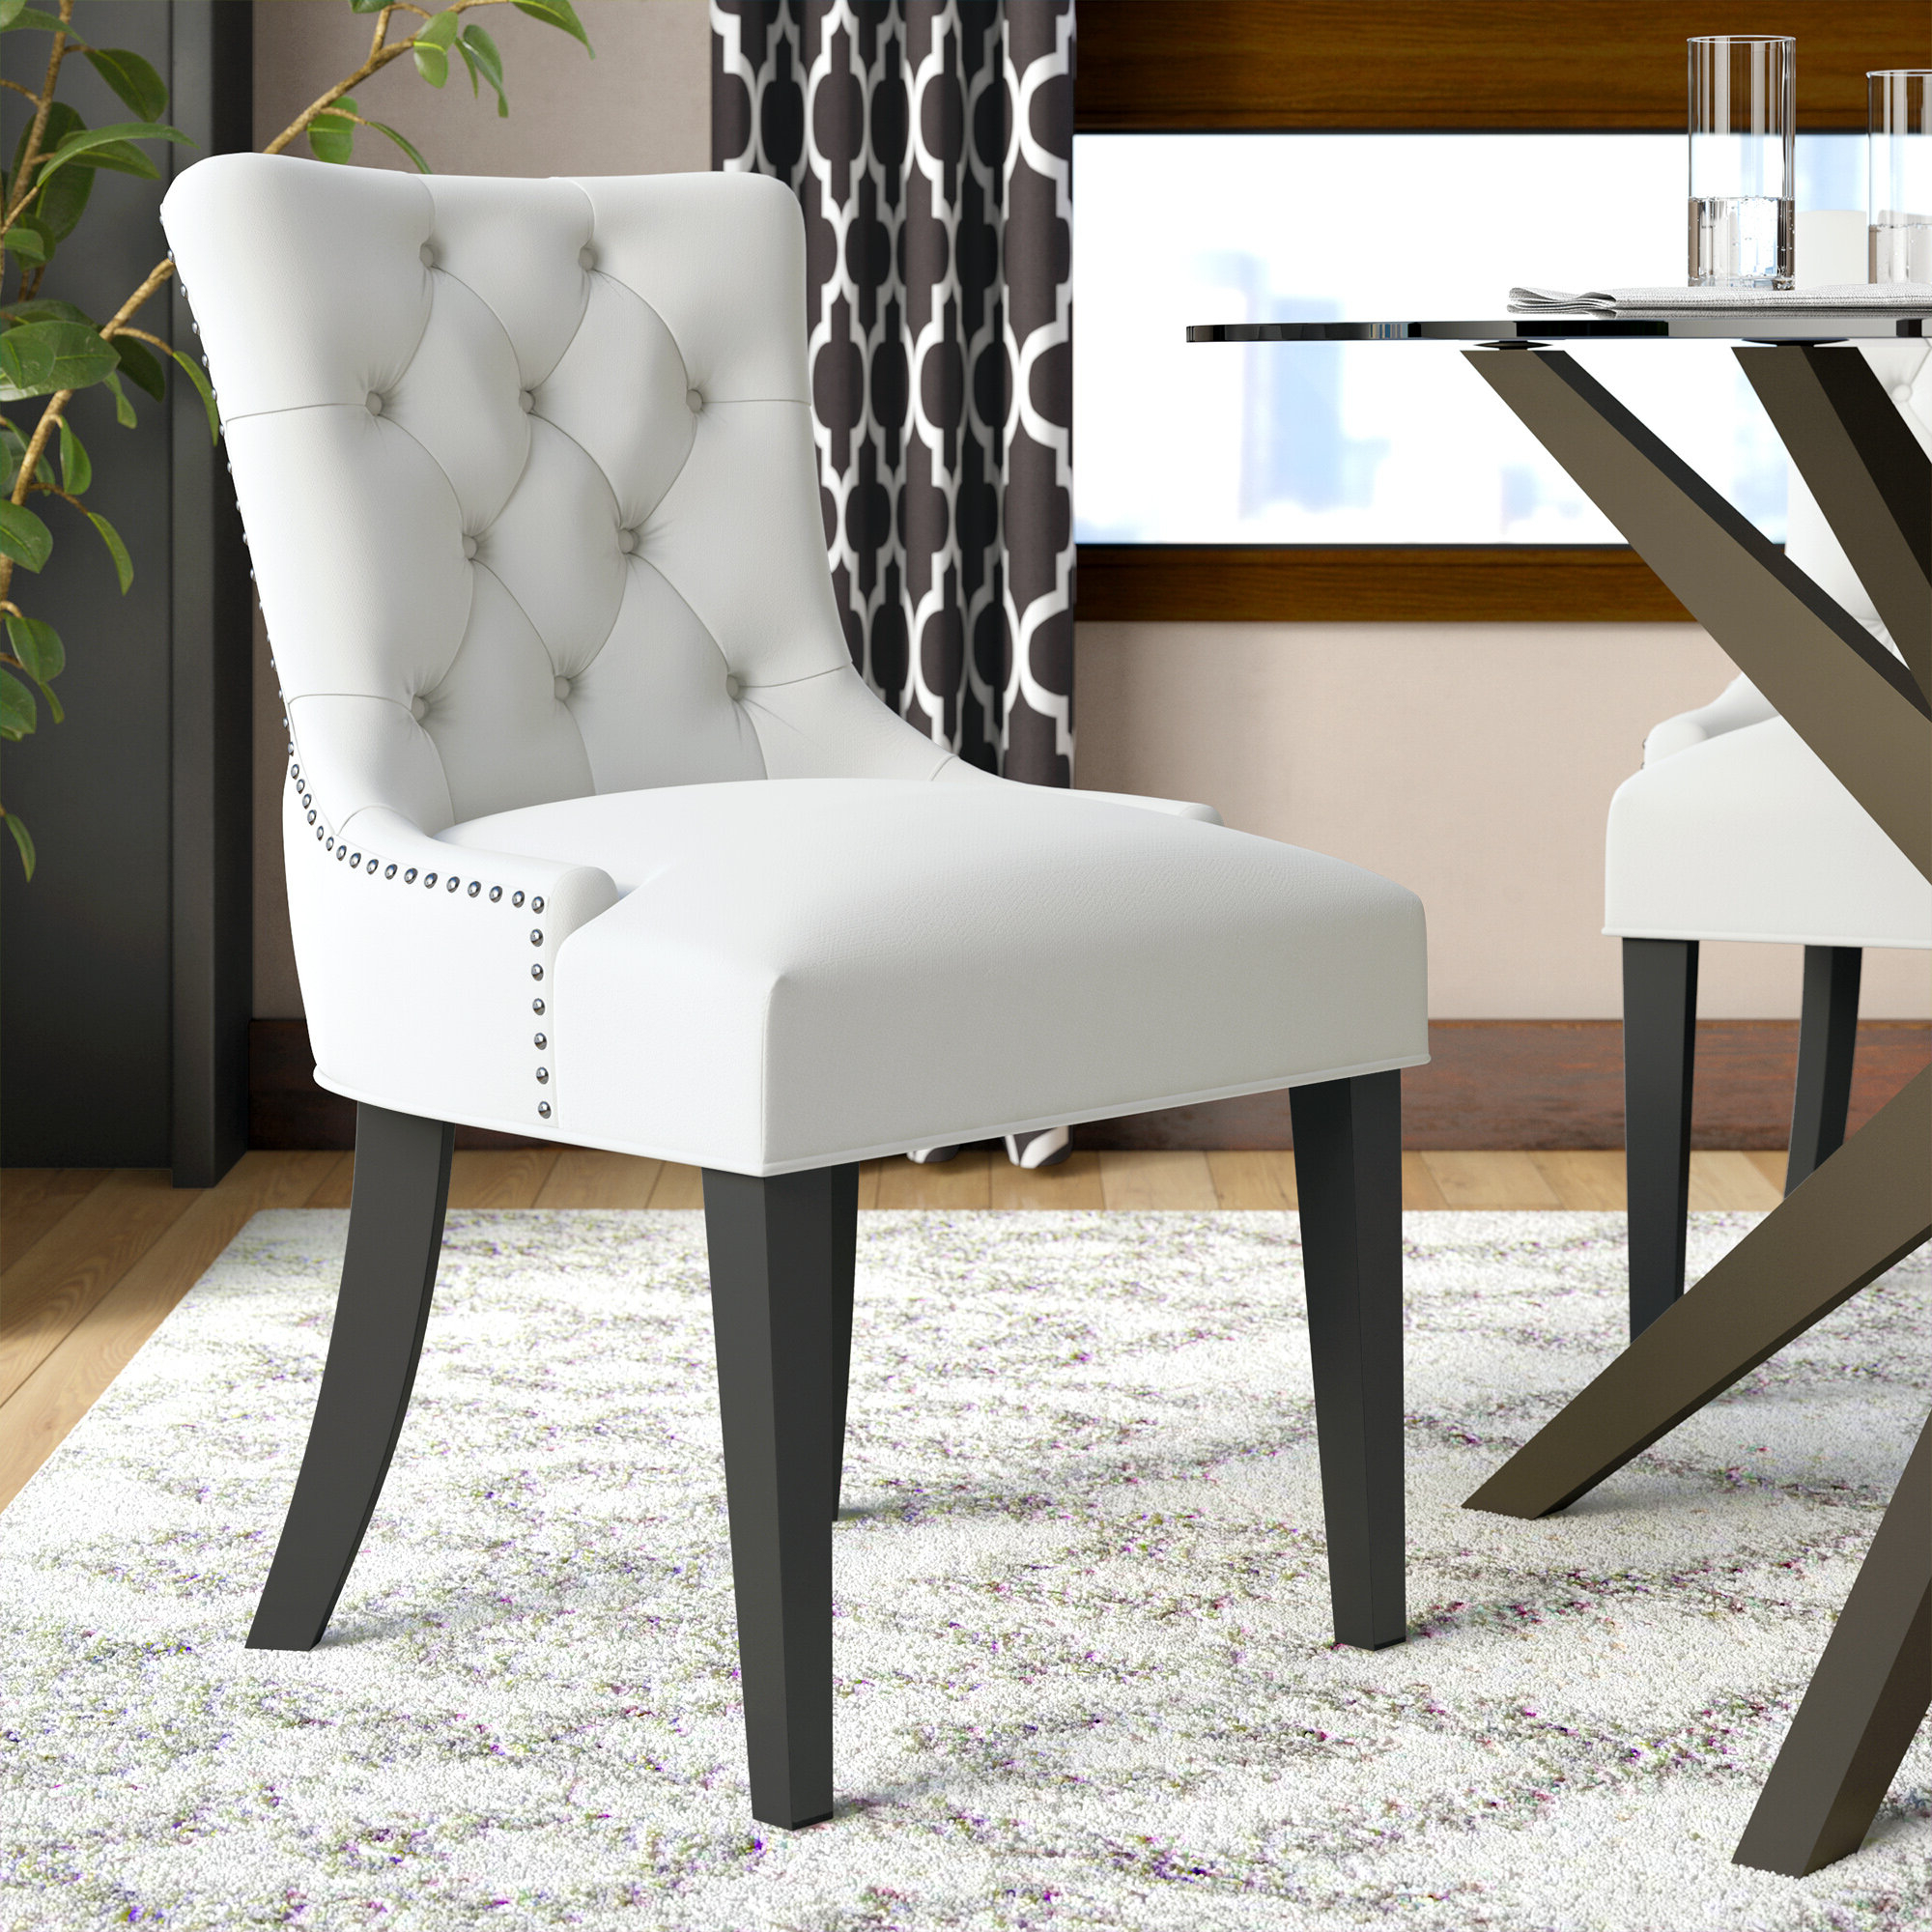 Best And Newest Carlton Tufted Upholstered Dining Chair Intended For Carlton Wood Leg Upholstered Dining Chairs (View 6 of 20)